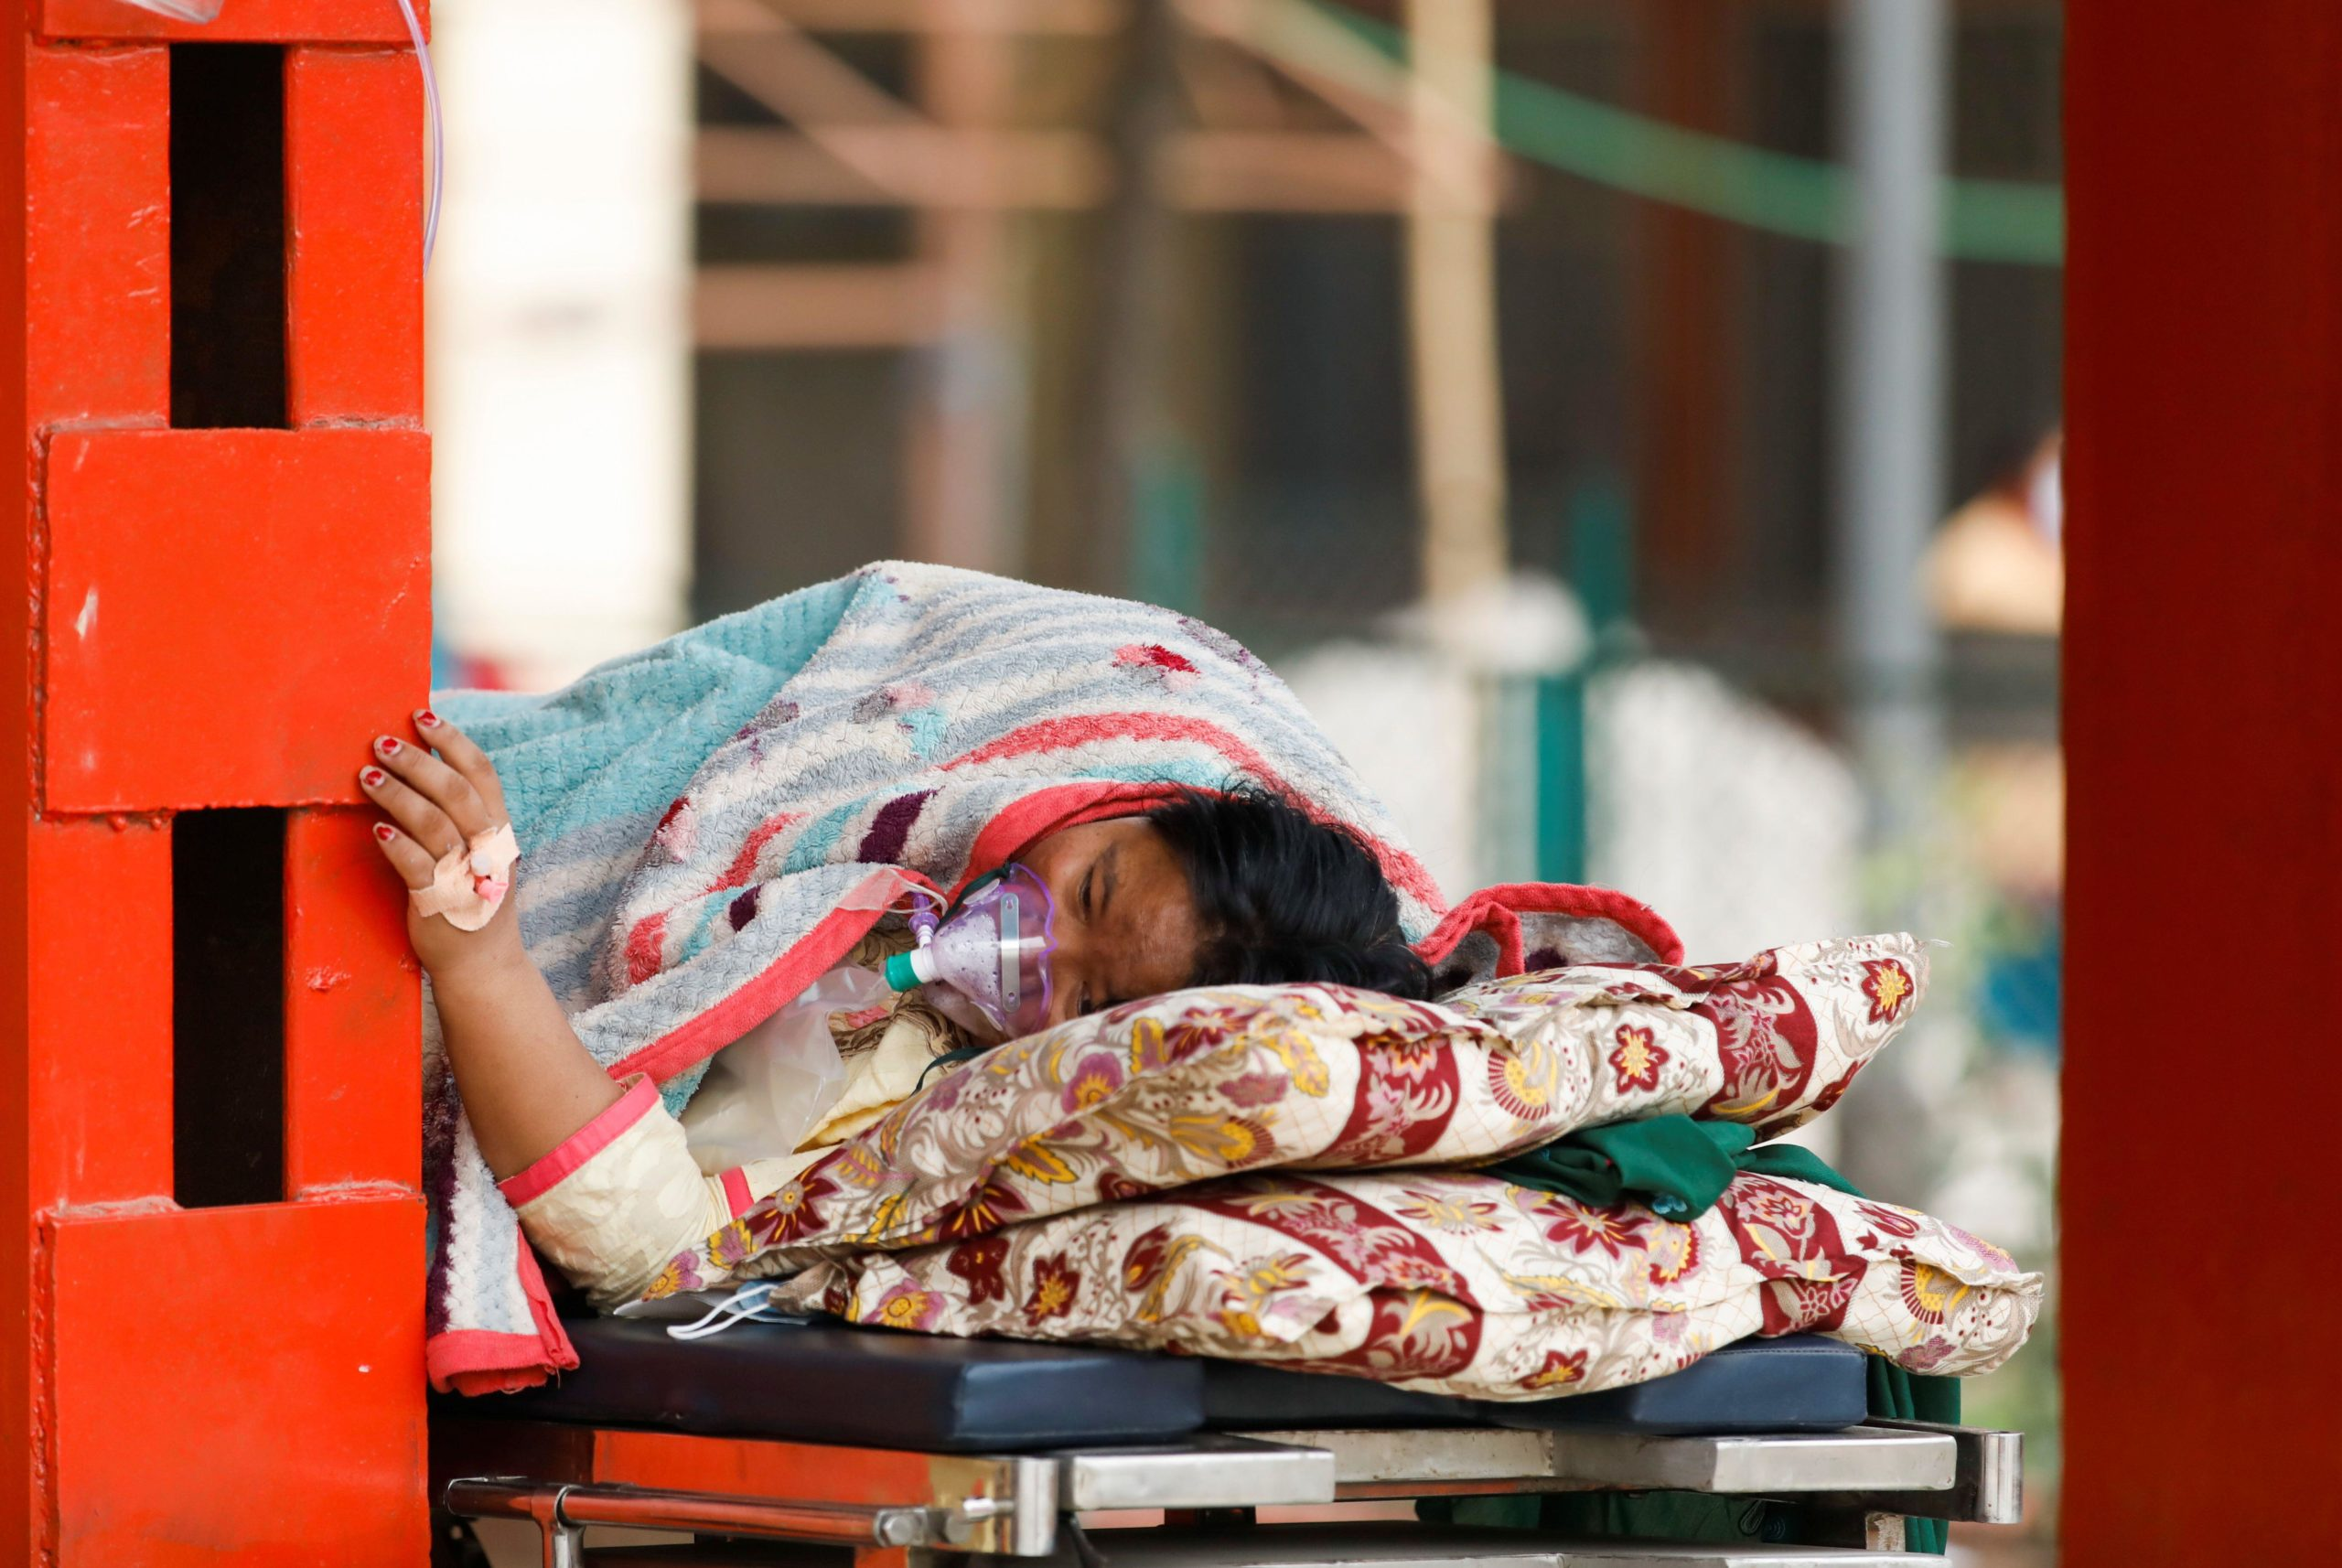 A patient receives oxygen as she waits outside a hospital in Kathmandu, Nepal, due to a lack of free beds inside (Image: Reuters / Navesh Chitrakar / Alamy)